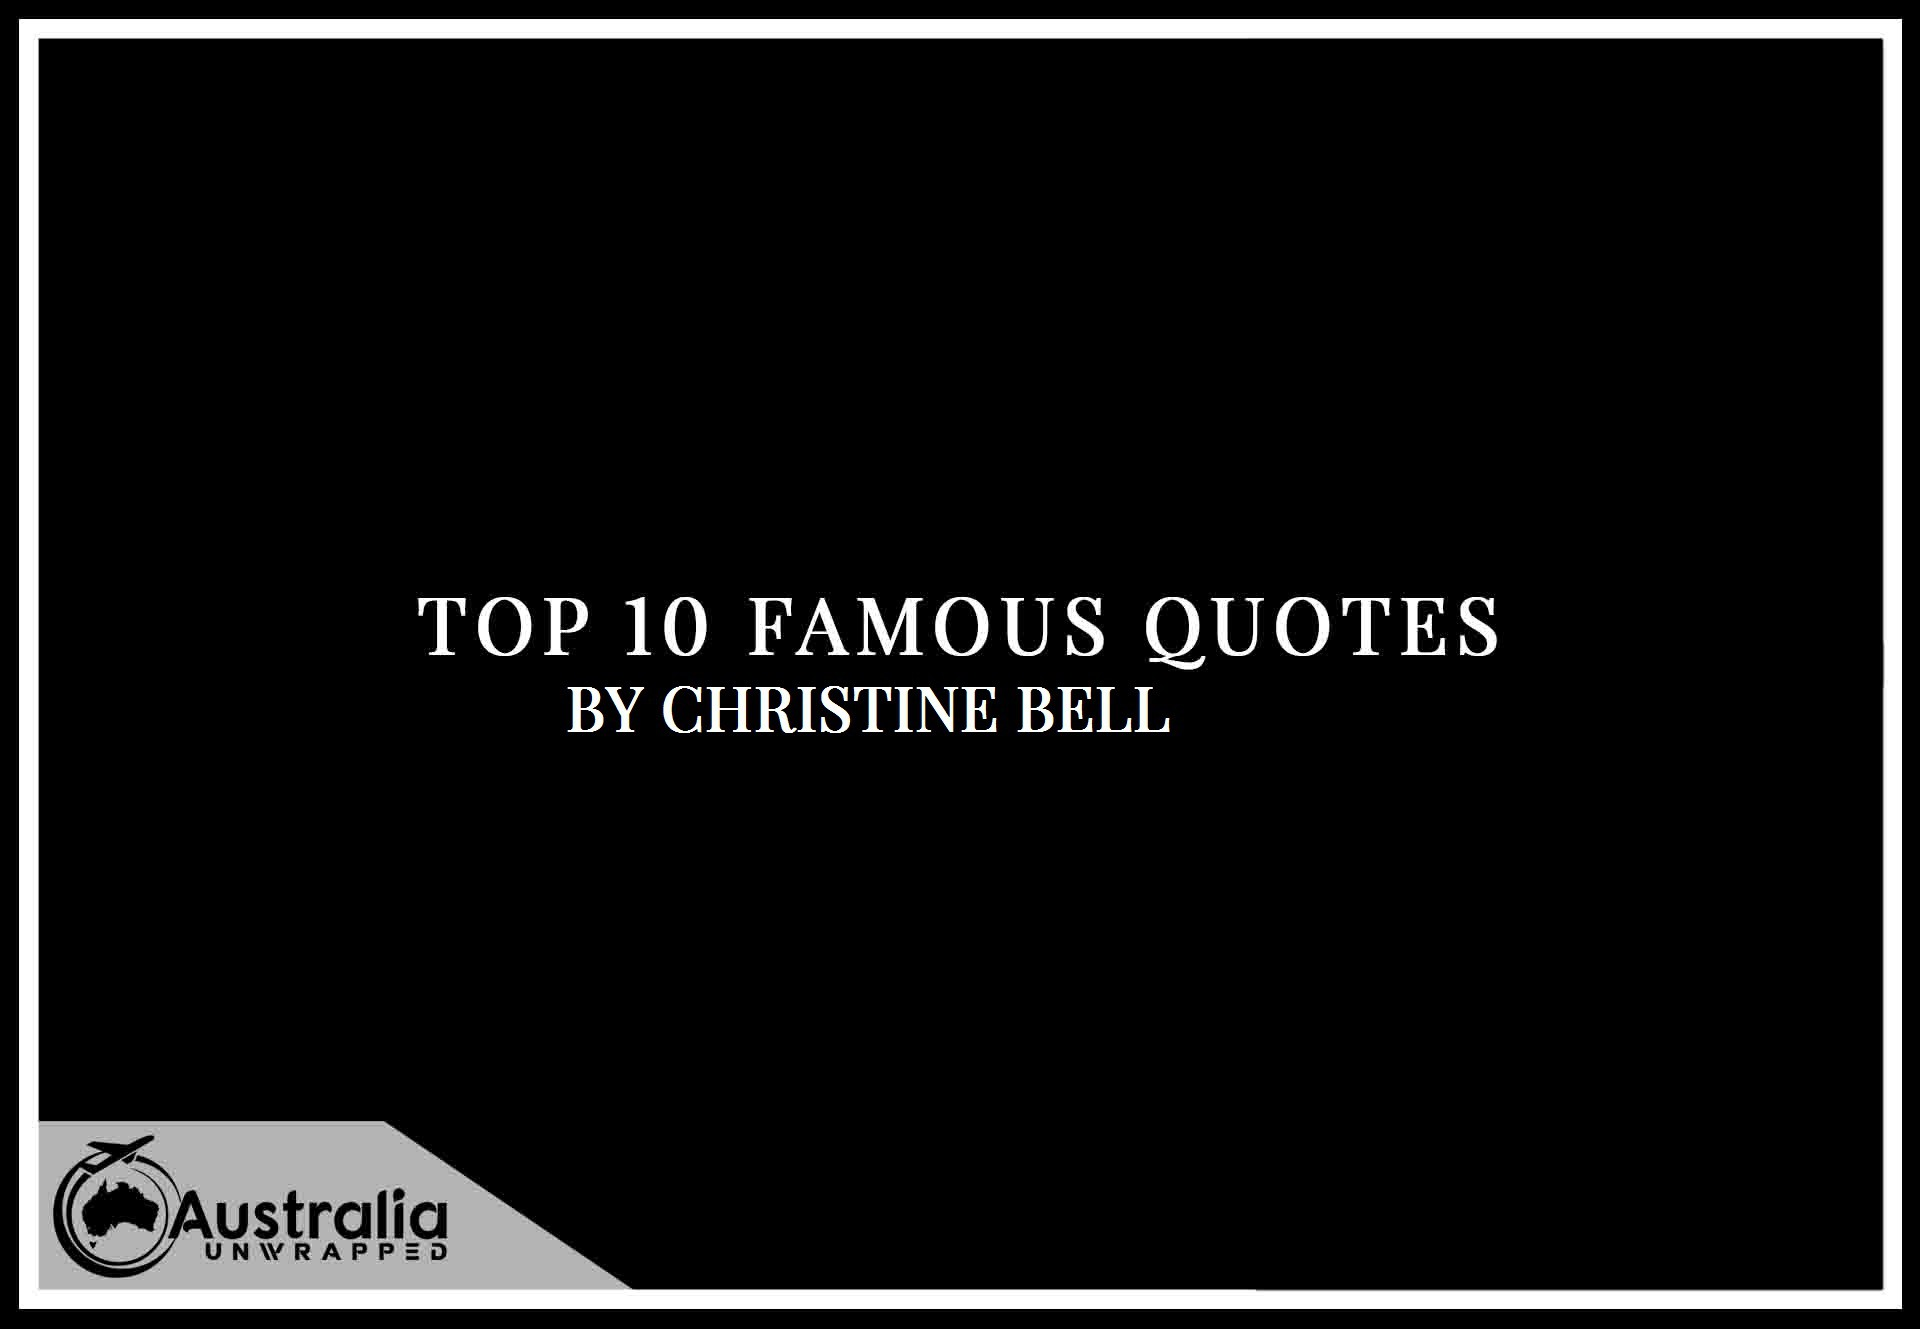 Christine Bell's Top 10 Popular and Famous Quotes